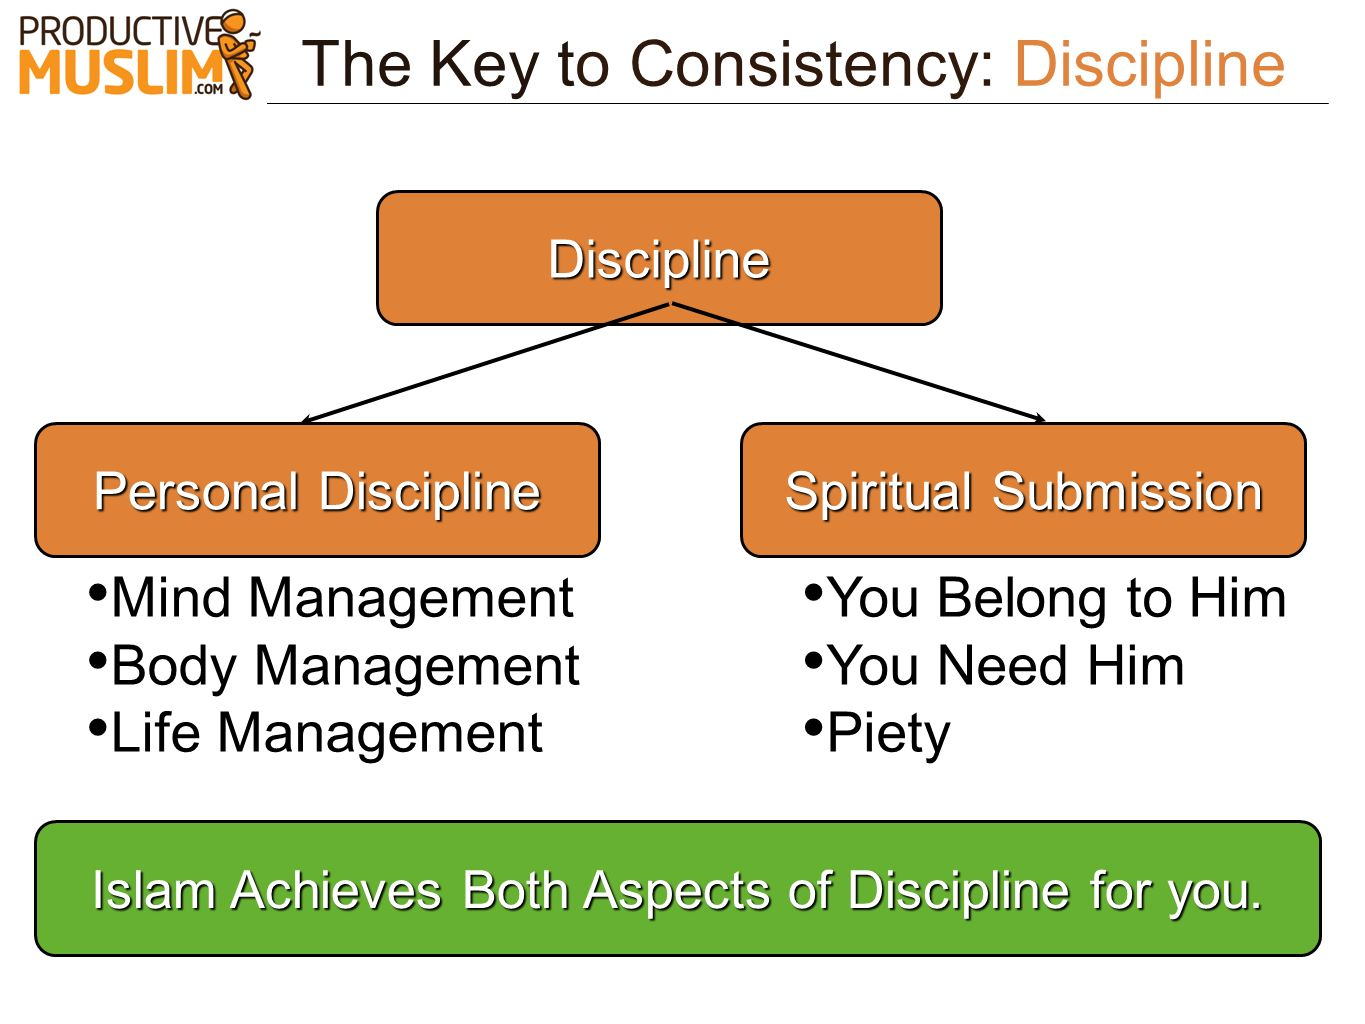 The Key to Consistency: Discipline